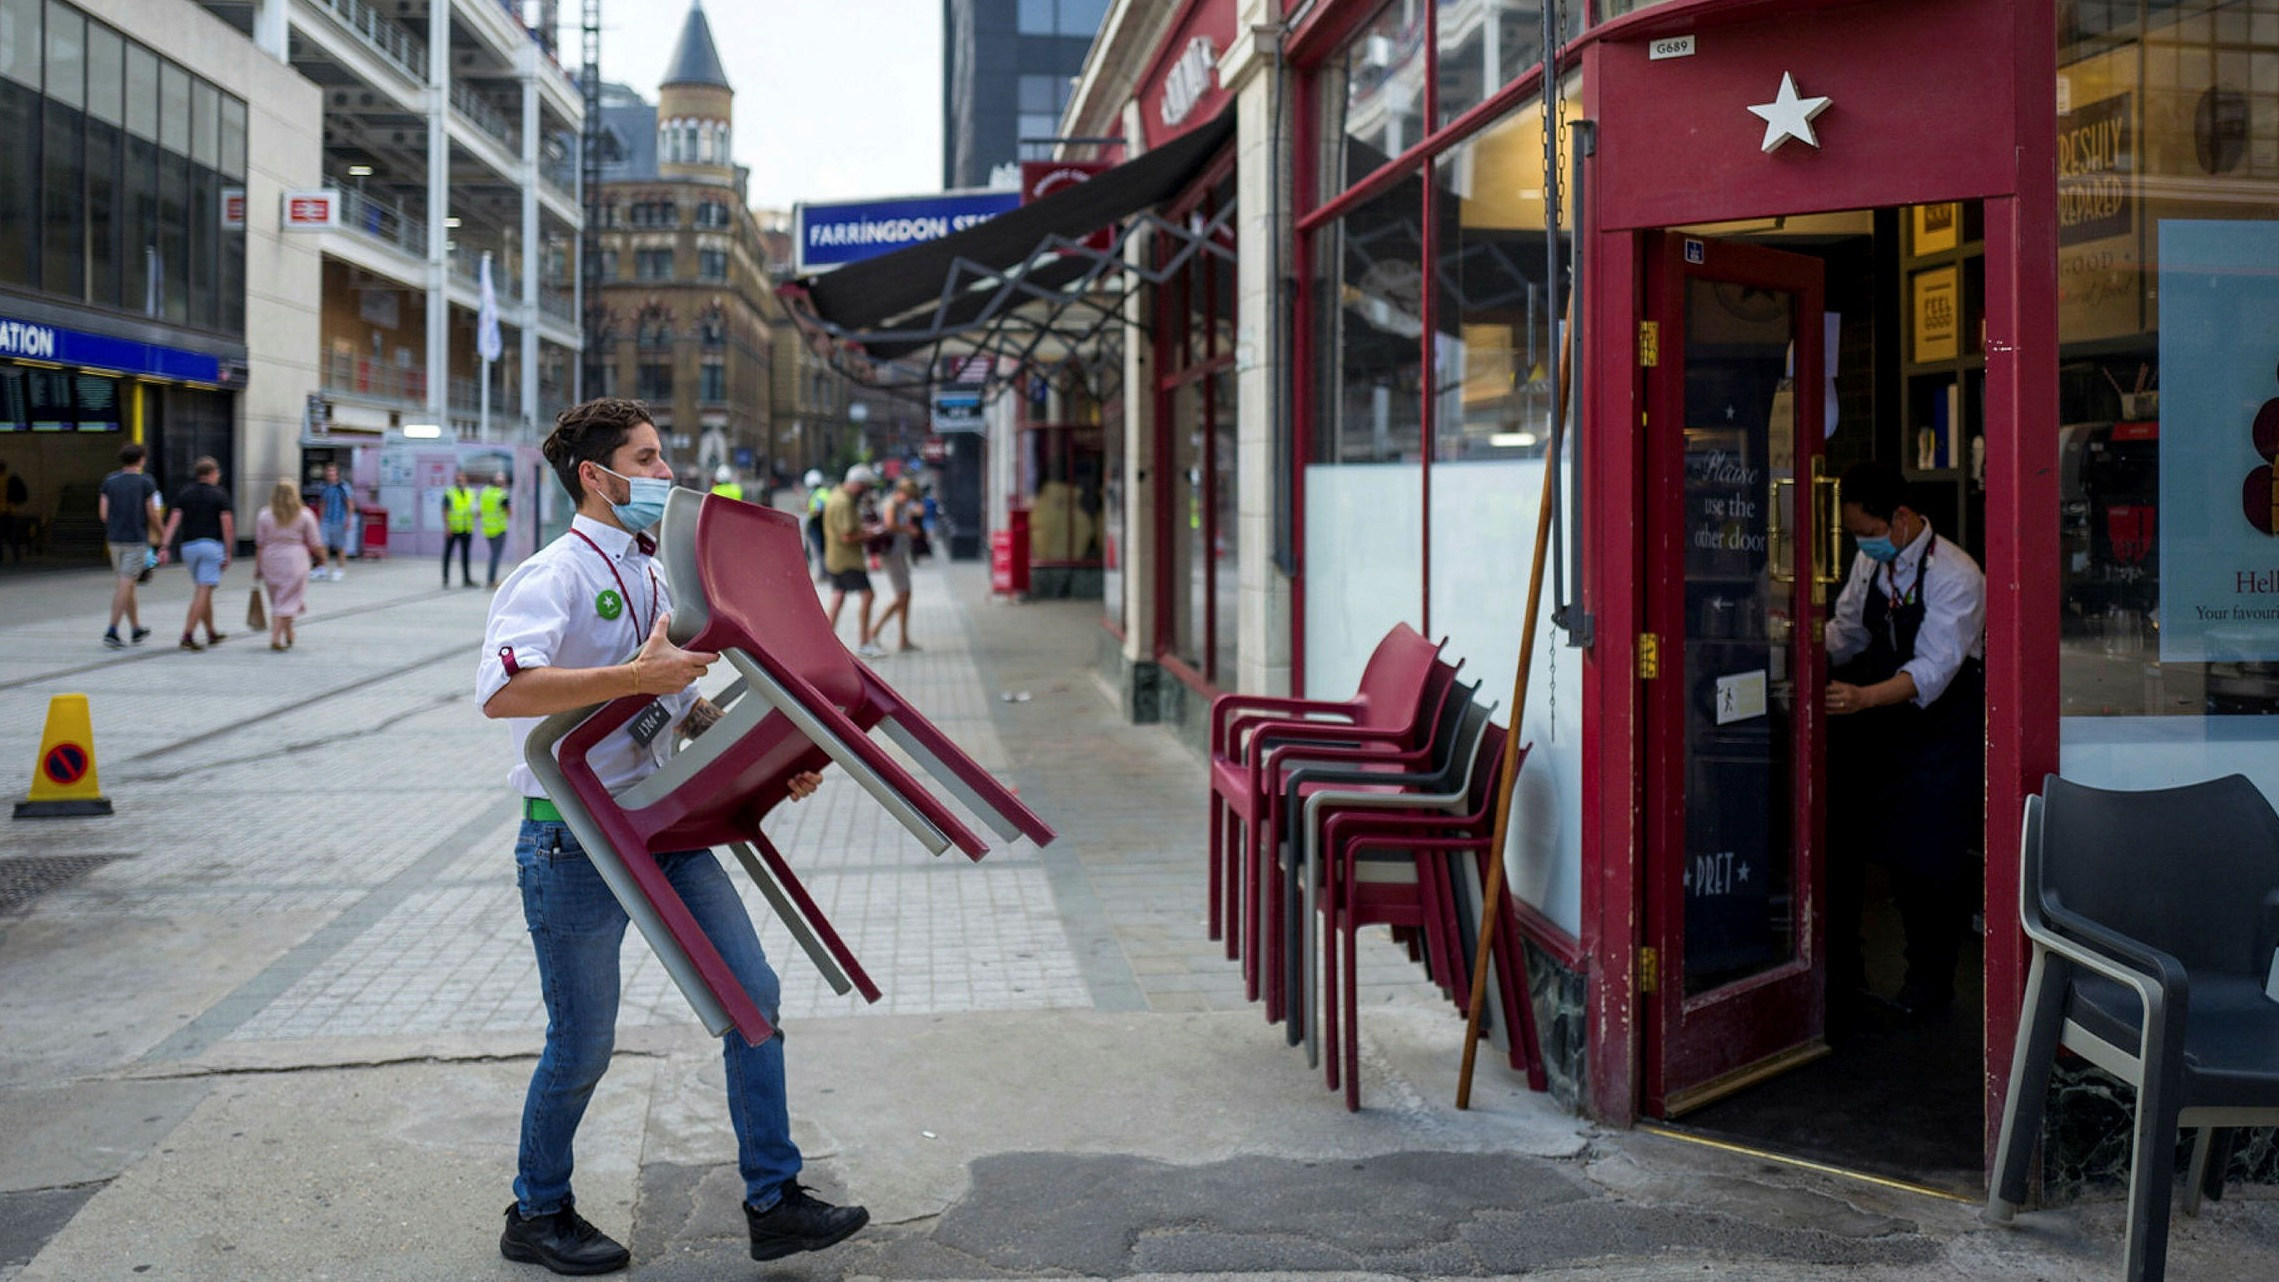 Goodbye to the 'Pret economy' and good luck to whatever replaces it | Financial Times